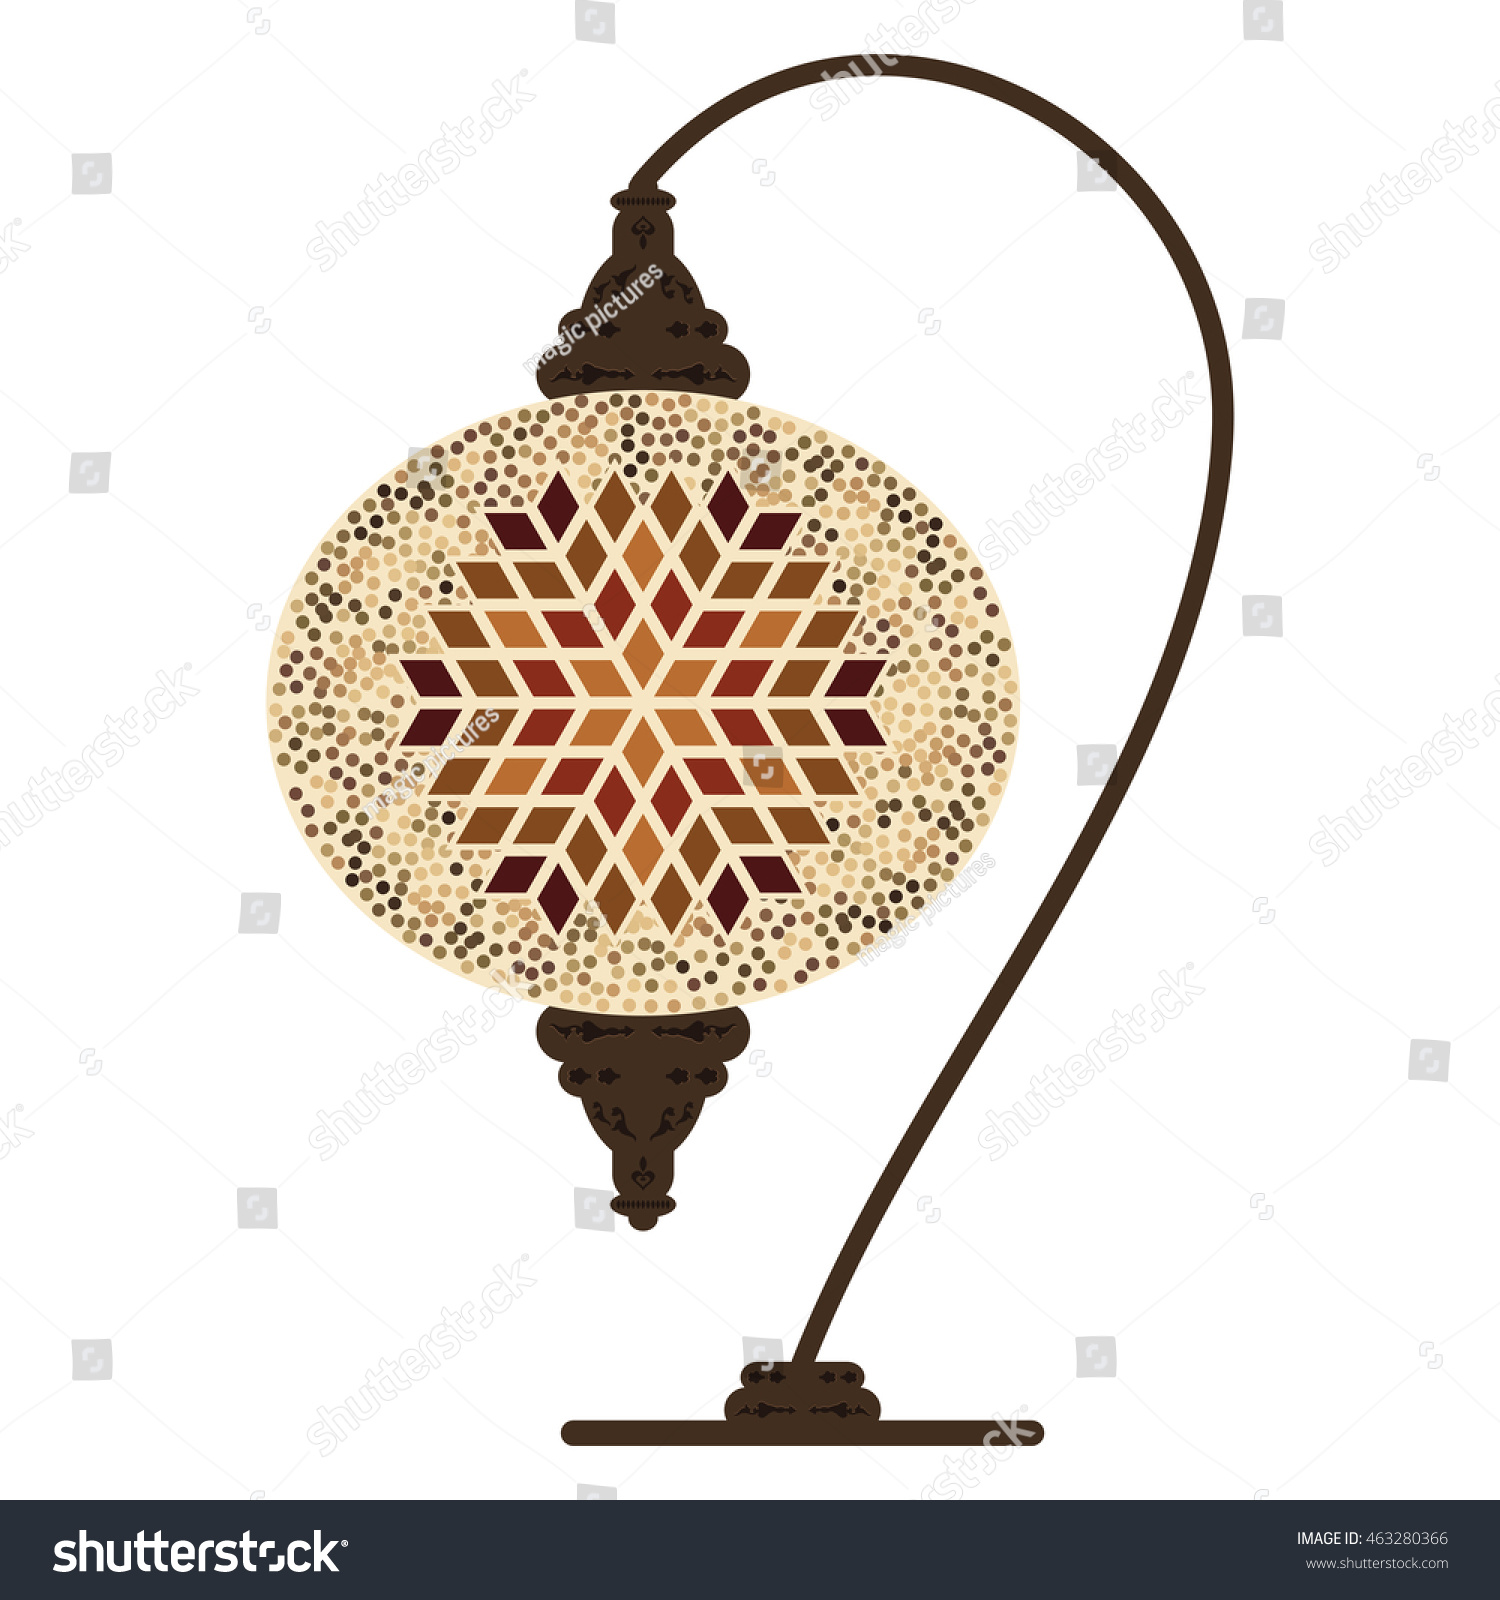 Vector illustration traditional turkish table lamp stock vector vector illustration of traditional turkish table lamp with beige ornamental design geotapseo Gallery